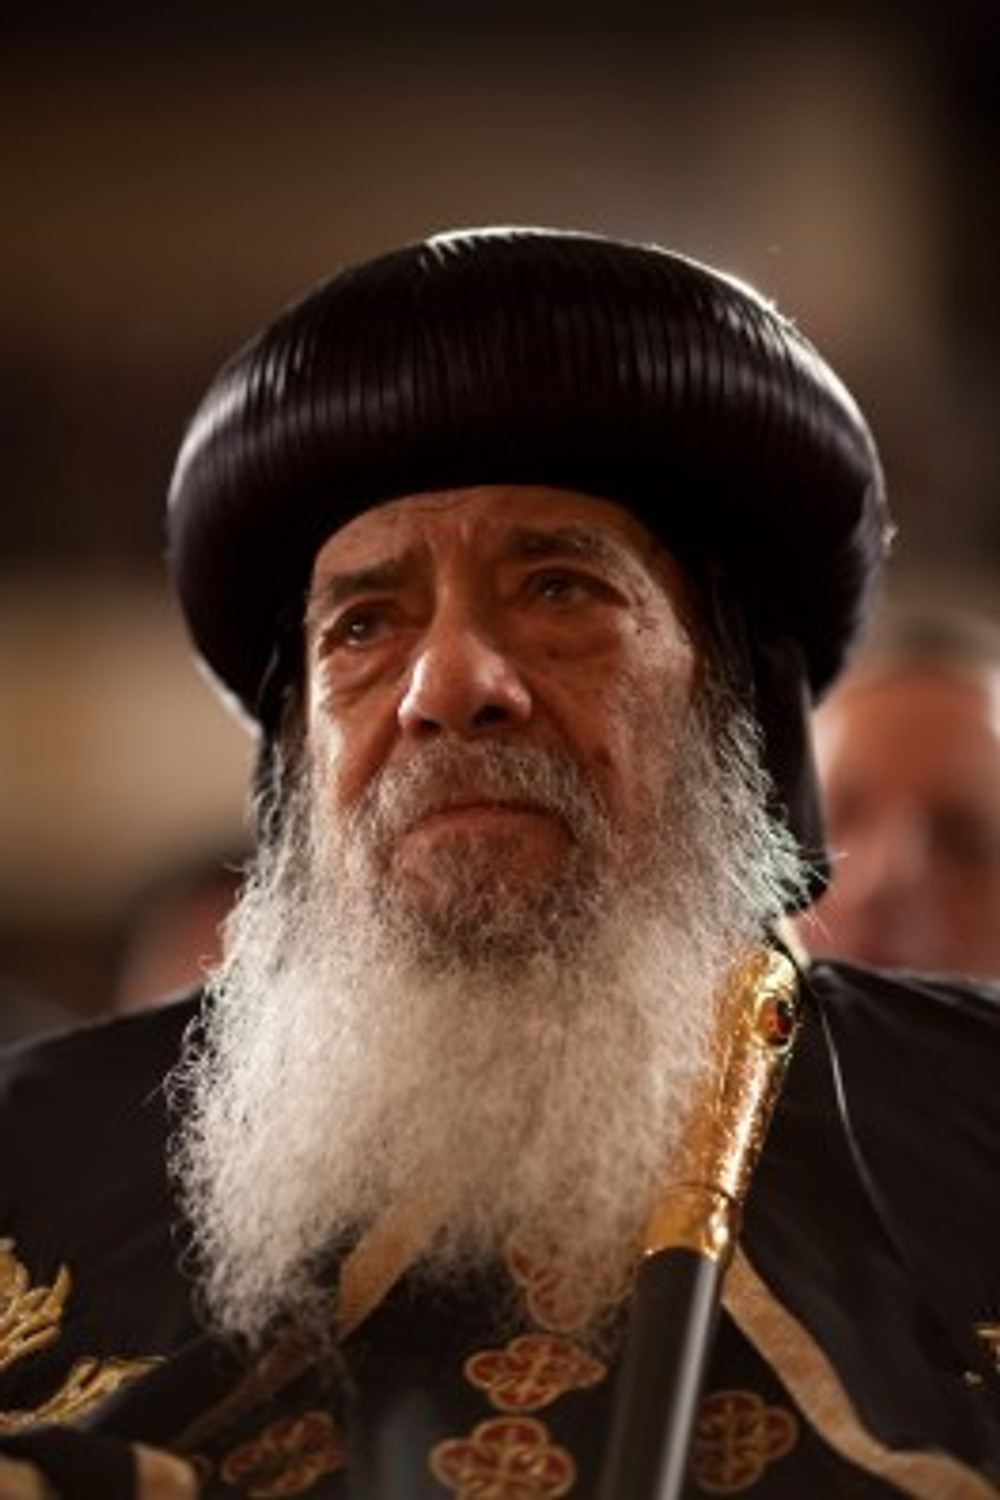 Pope_Shenouda_III_of_Alexandria_by_Chuck_Kennedy_(Official_White_House_Photostream).jpg